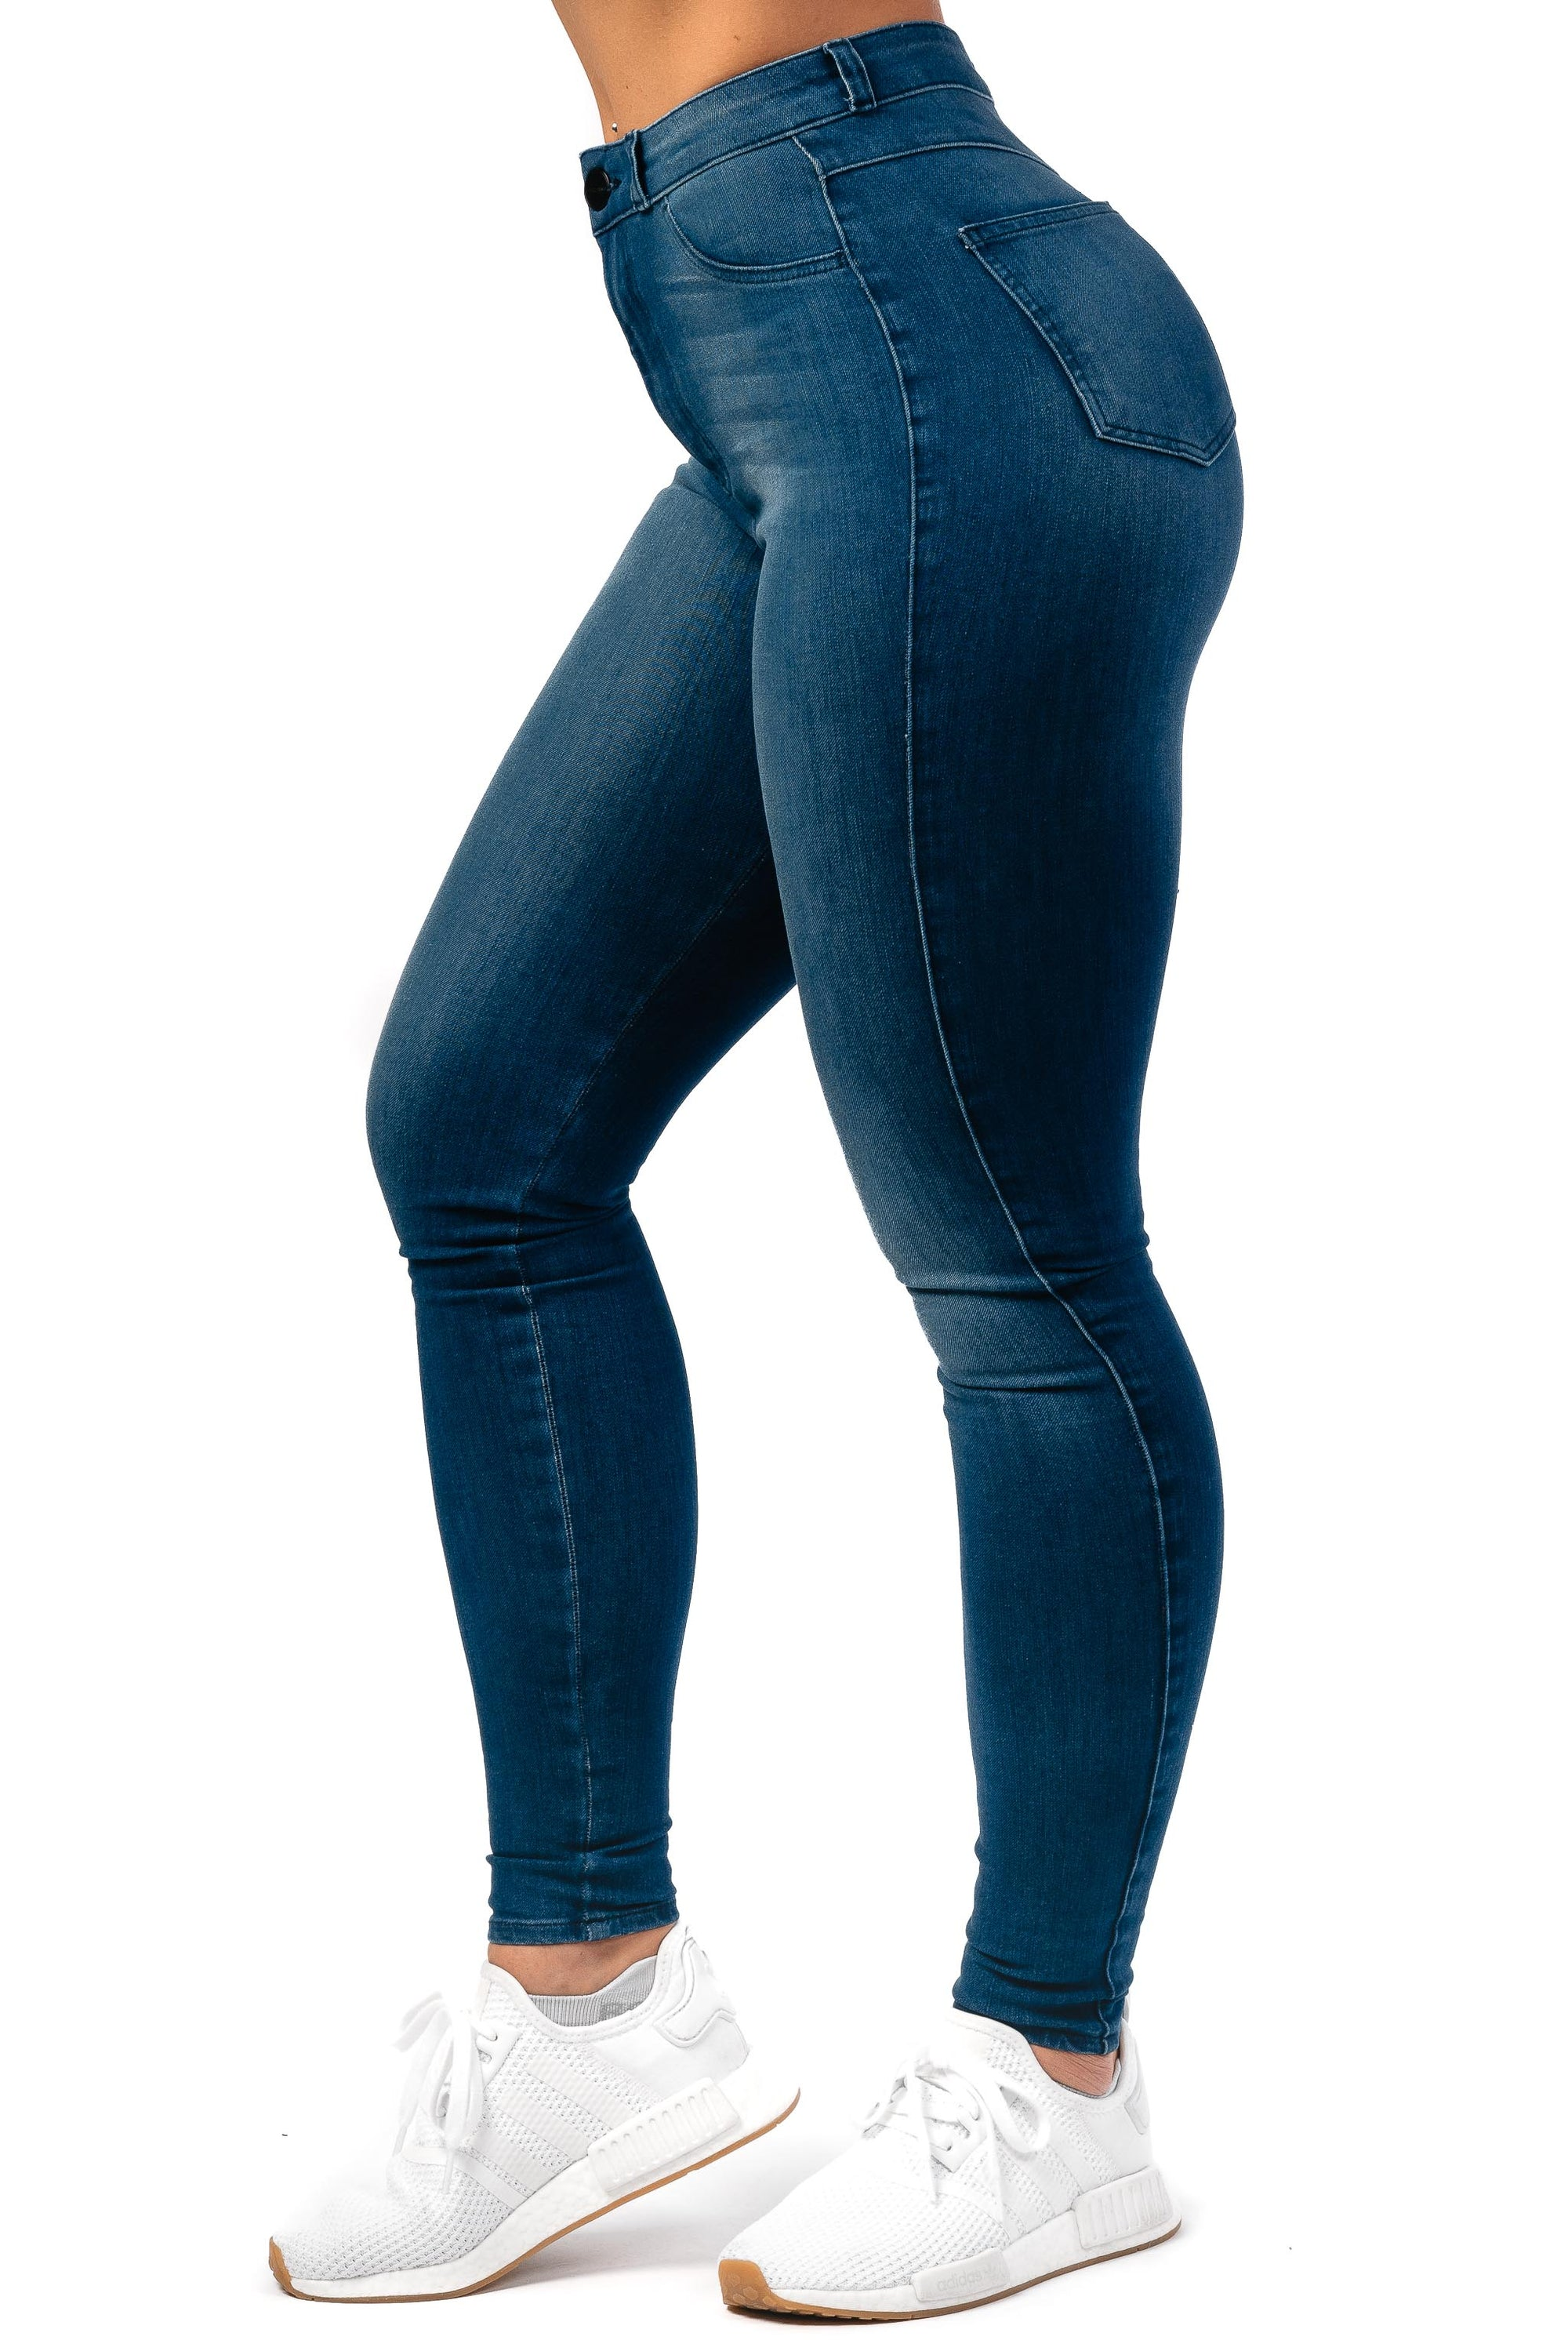 Womens 360 High Waisted Fitjeans - Azure Blue